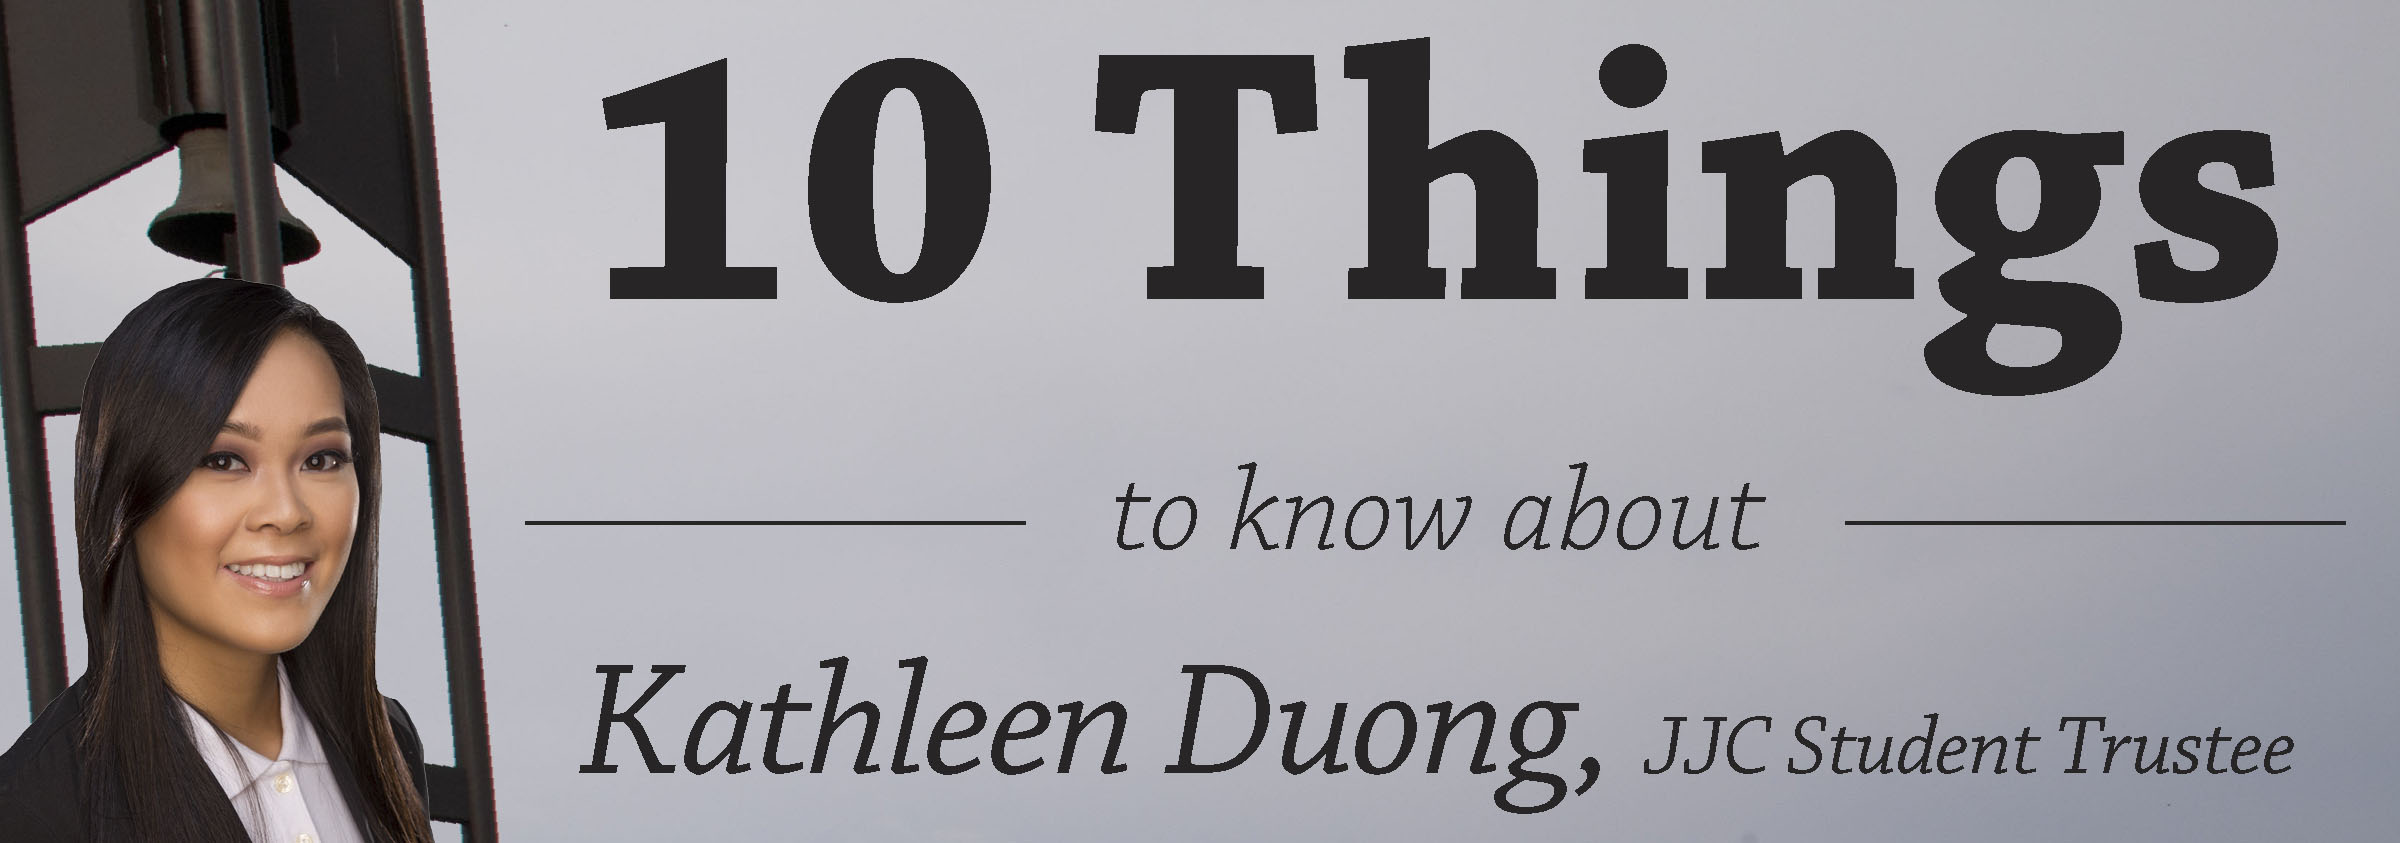 10 things to know about kathleen duong, jjc student trustee